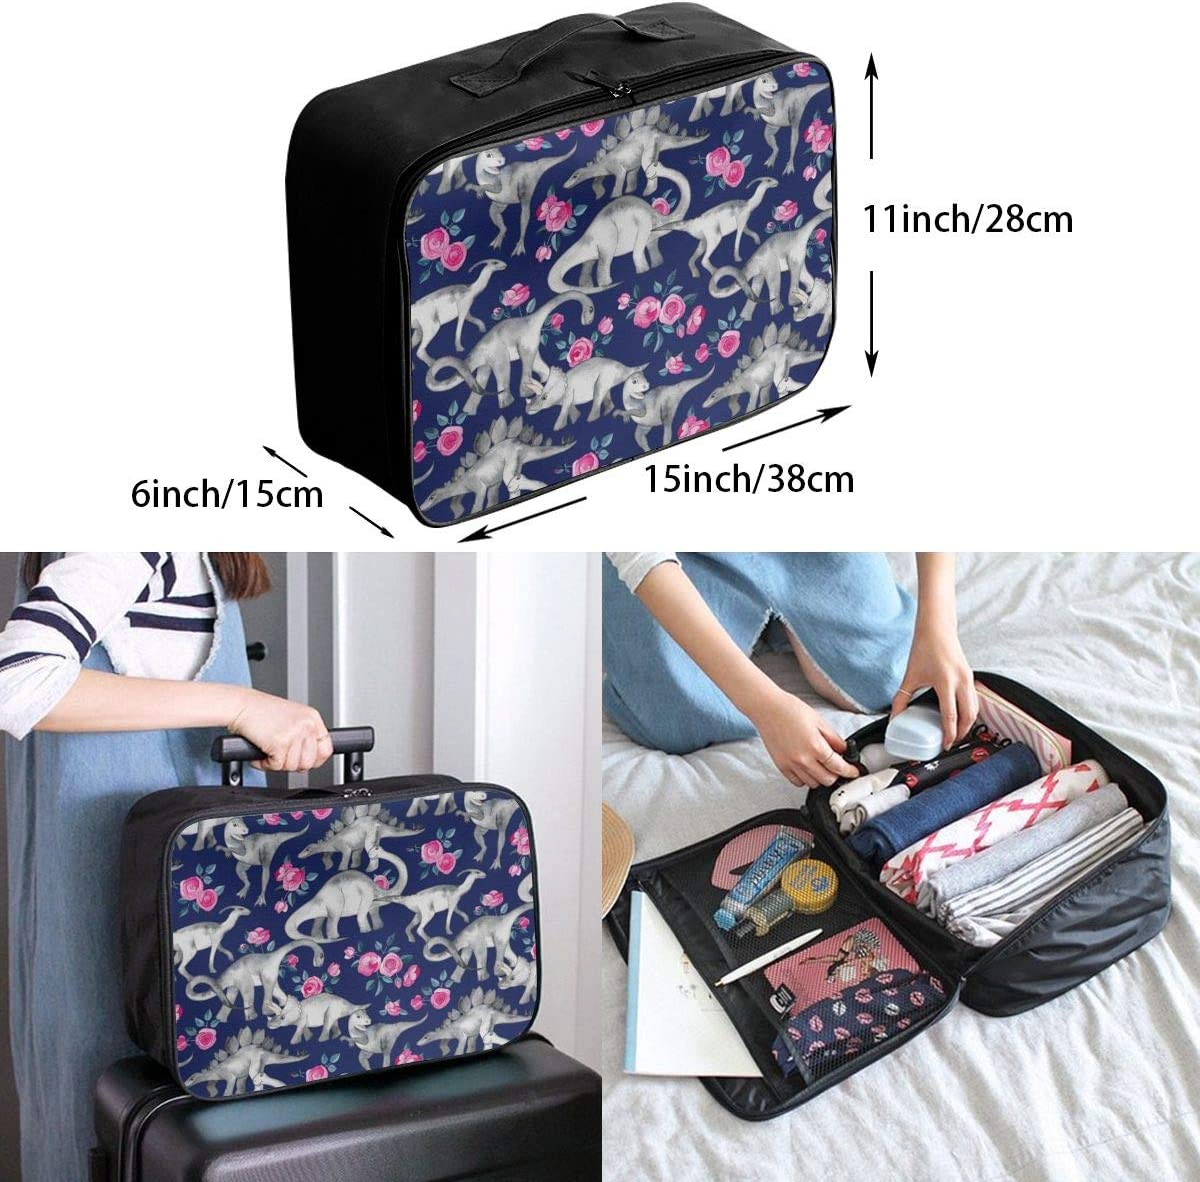 Dinosaurs And Roses Travel Carry-on Luggage Weekender Bag Overnight Tote Flight Duffel In Trolley Handle